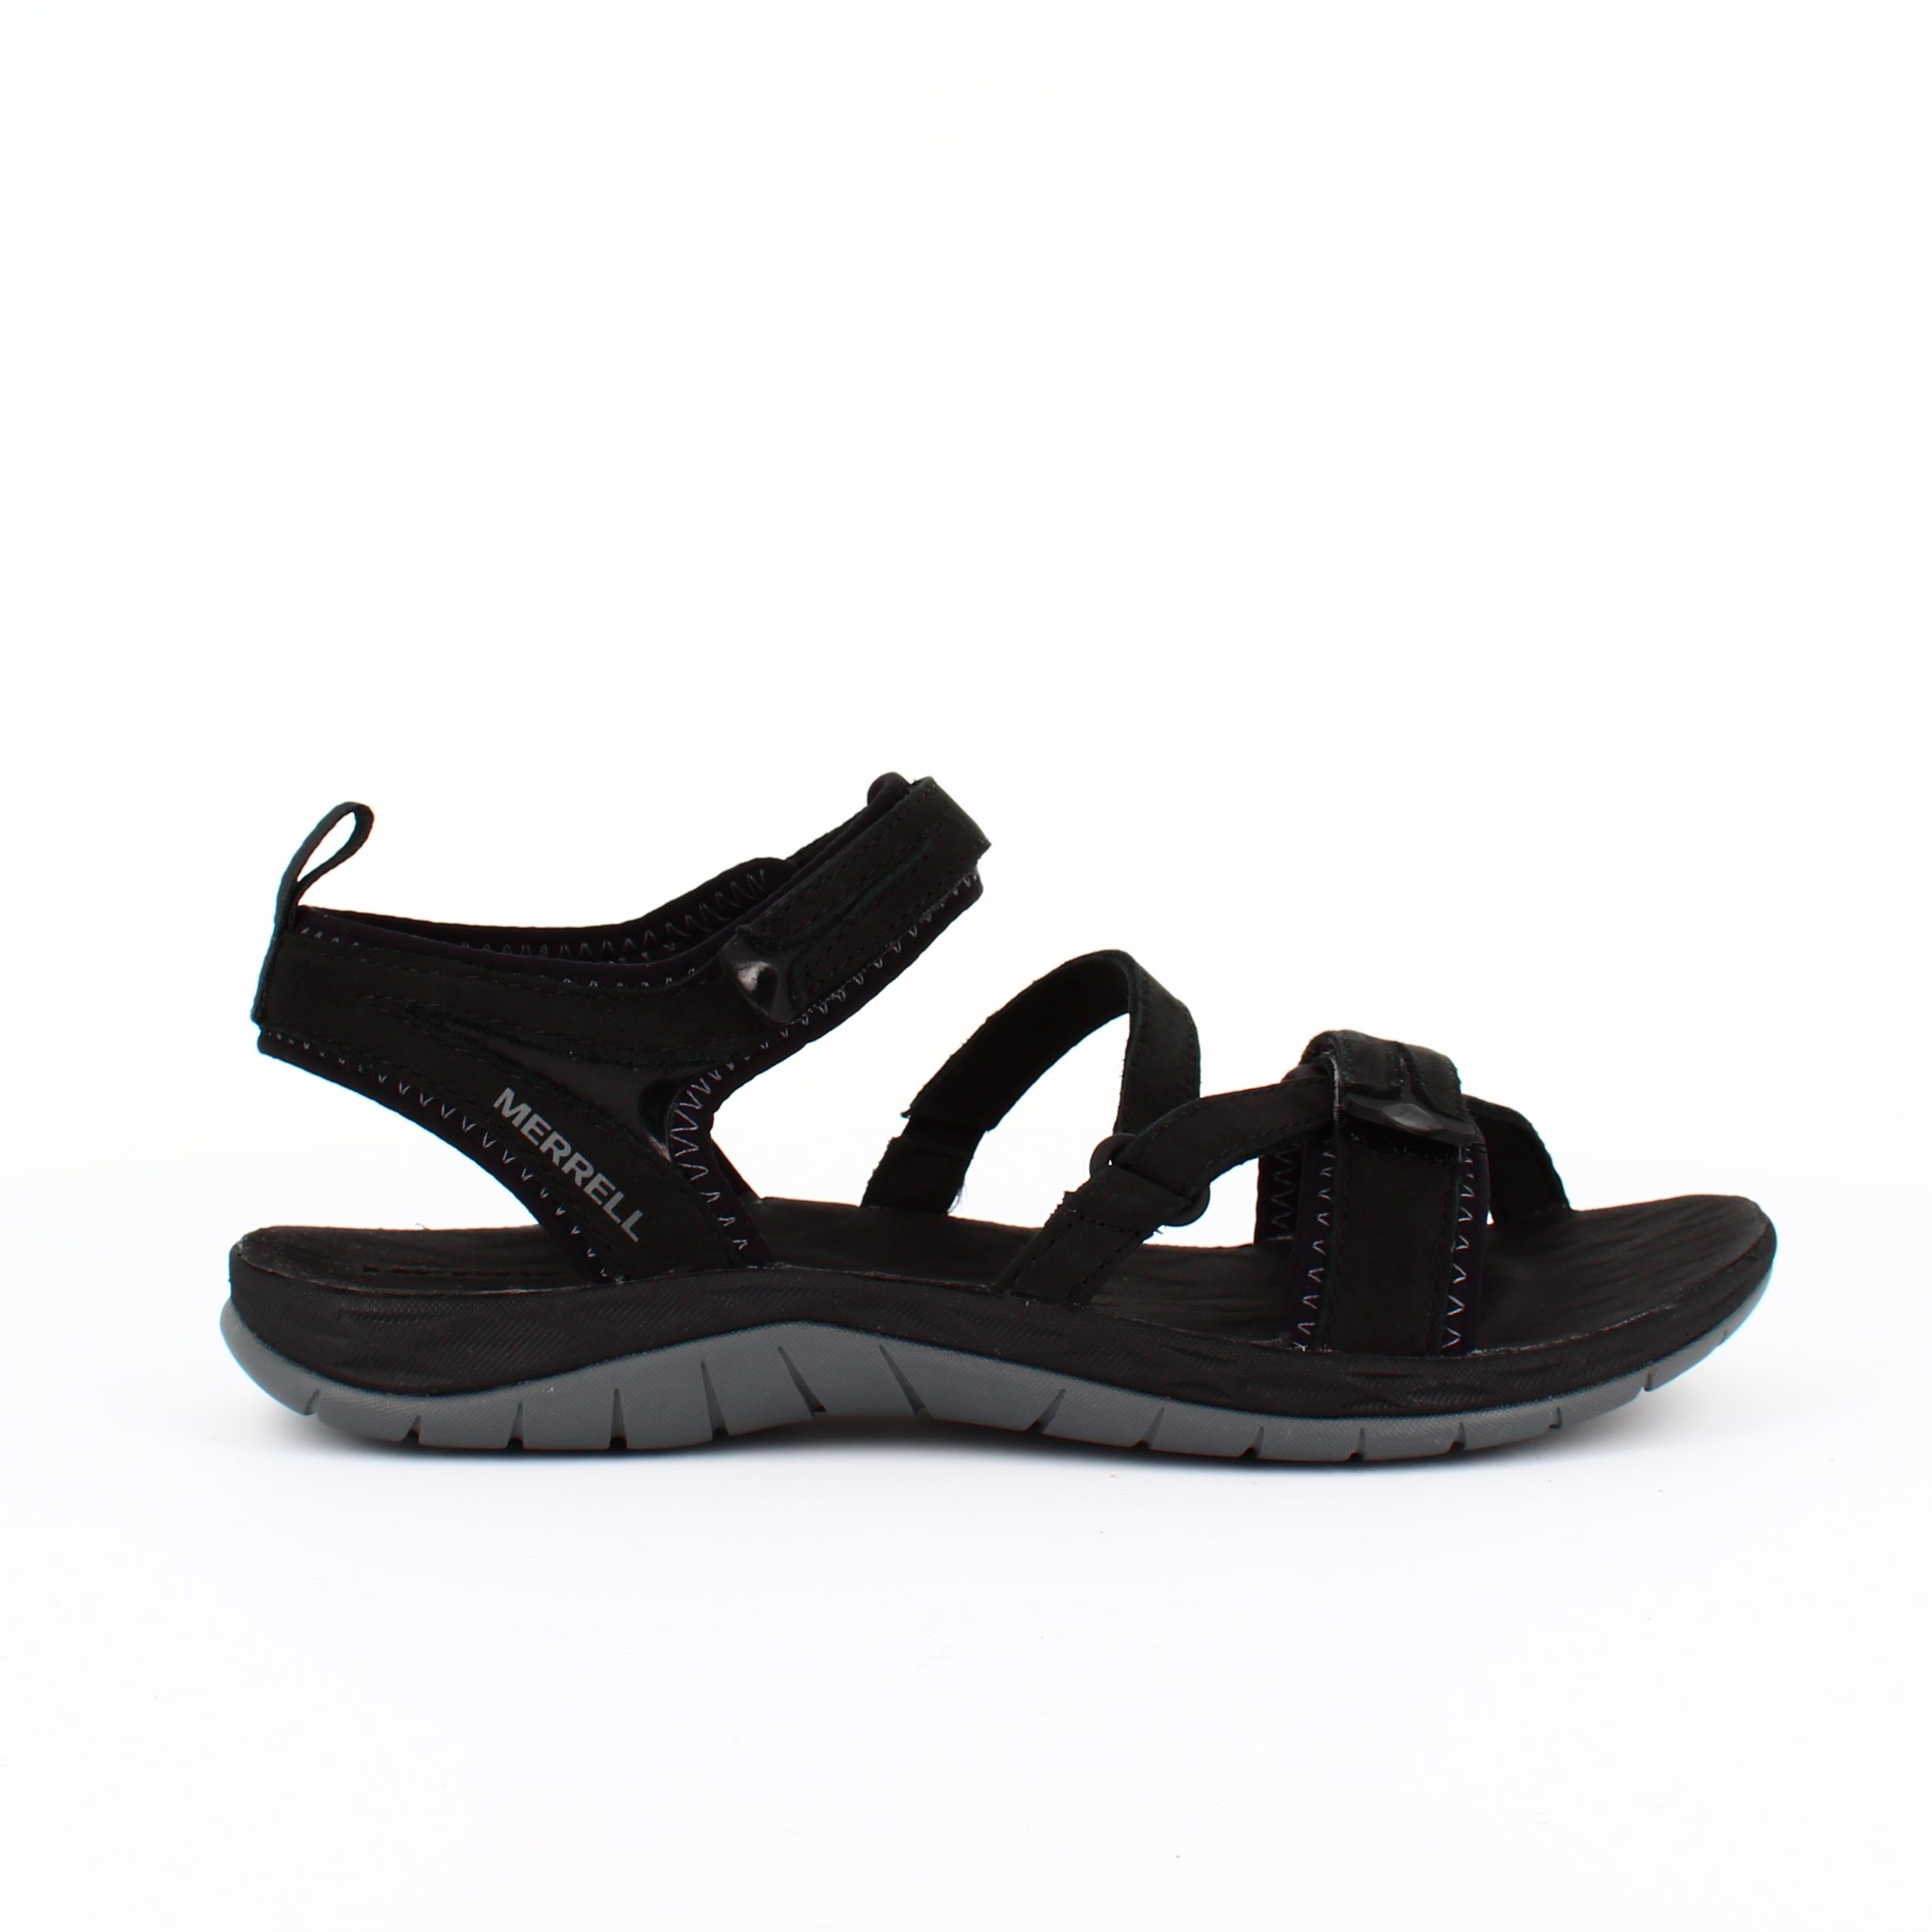 Image of   Sort sporty sandal fra Merrell - 38